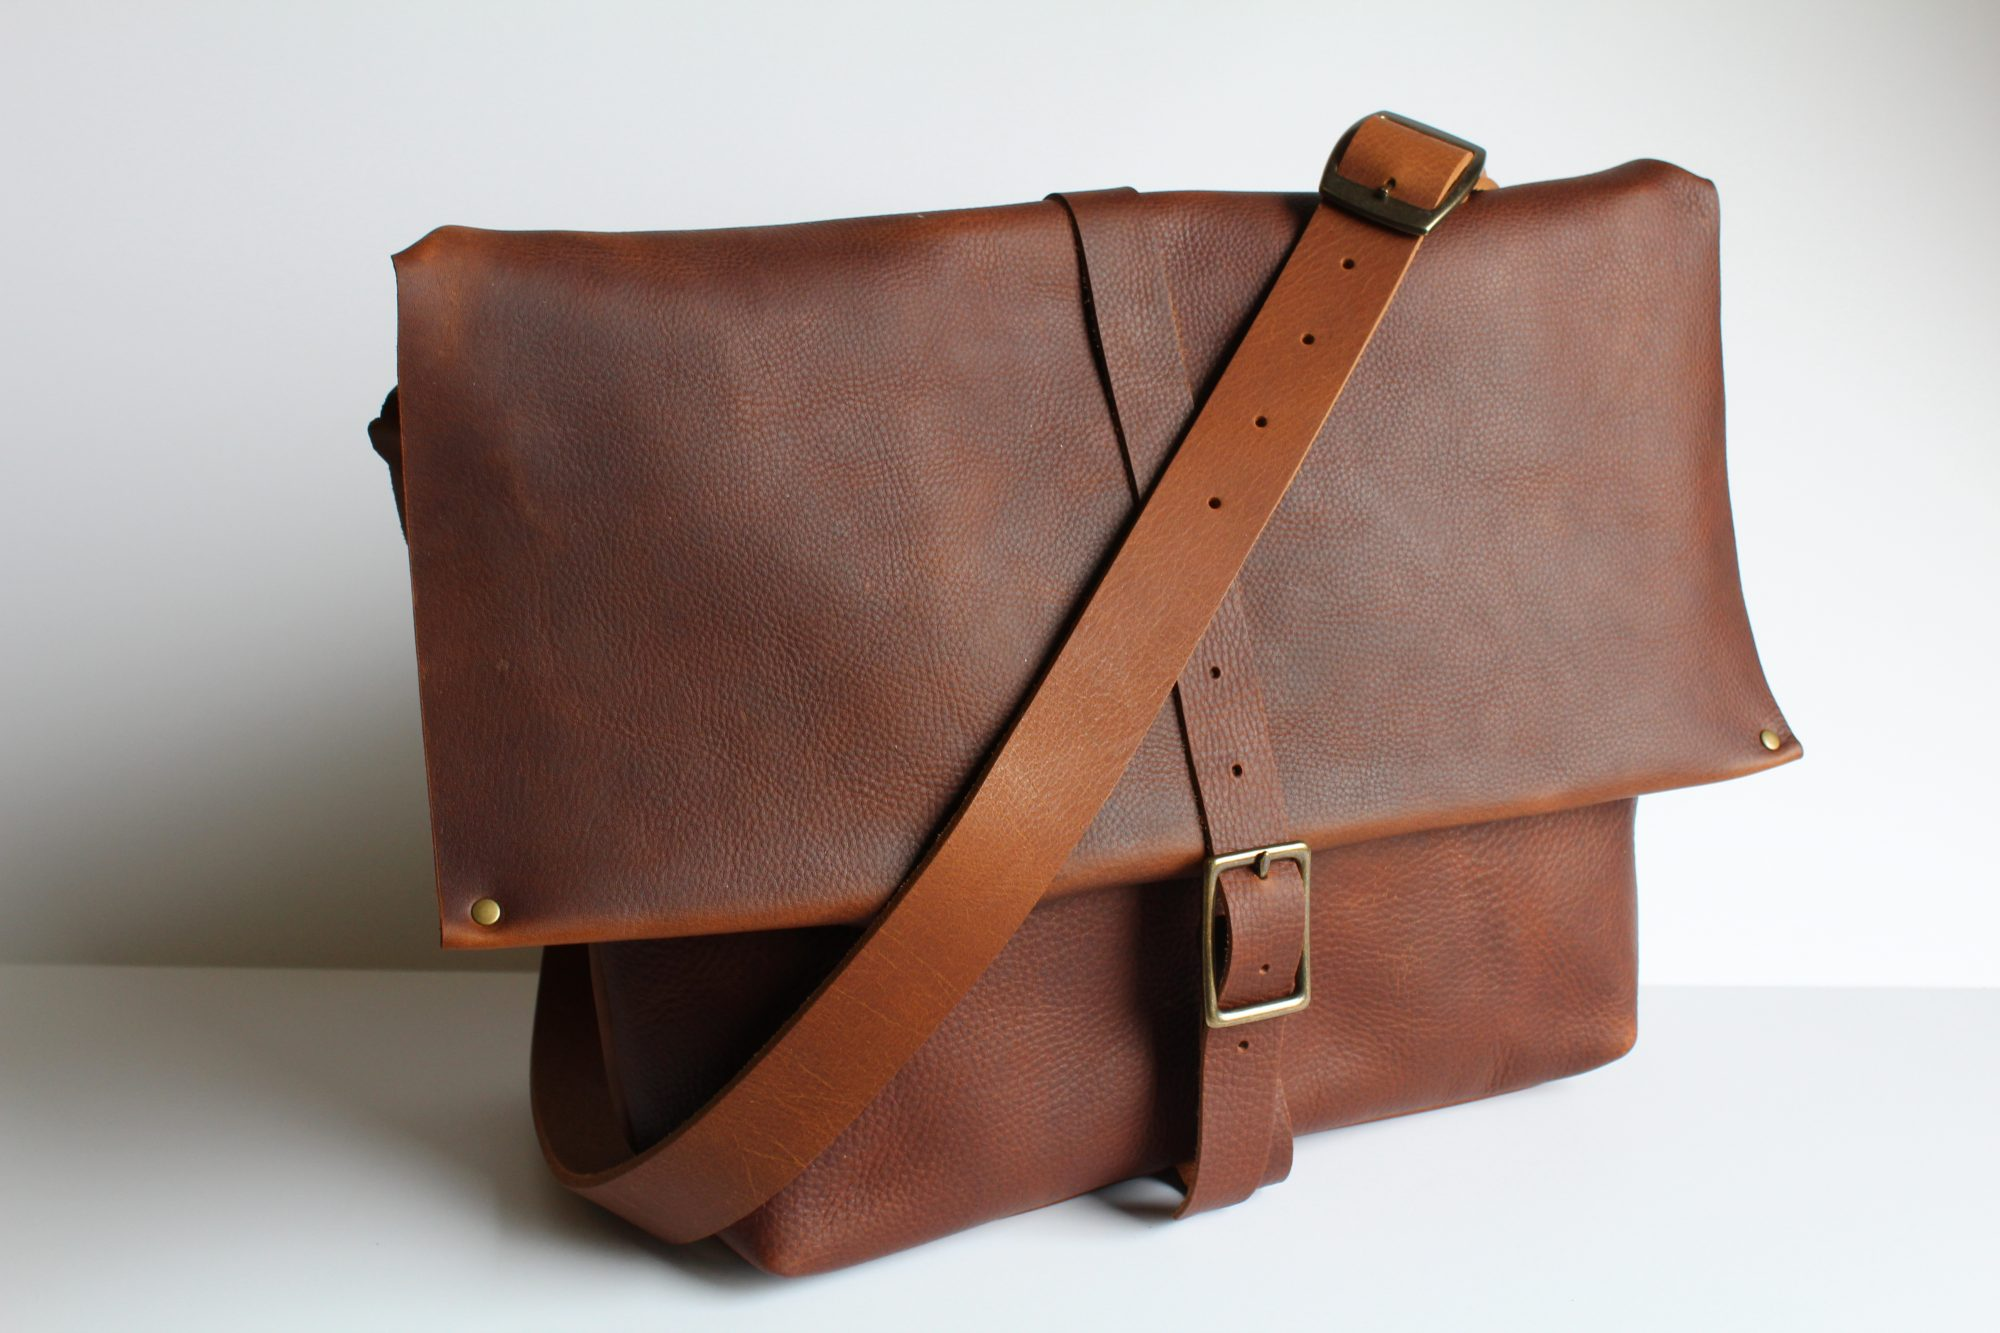 In Blue Handmade Clark Street Leather Messenger Bag